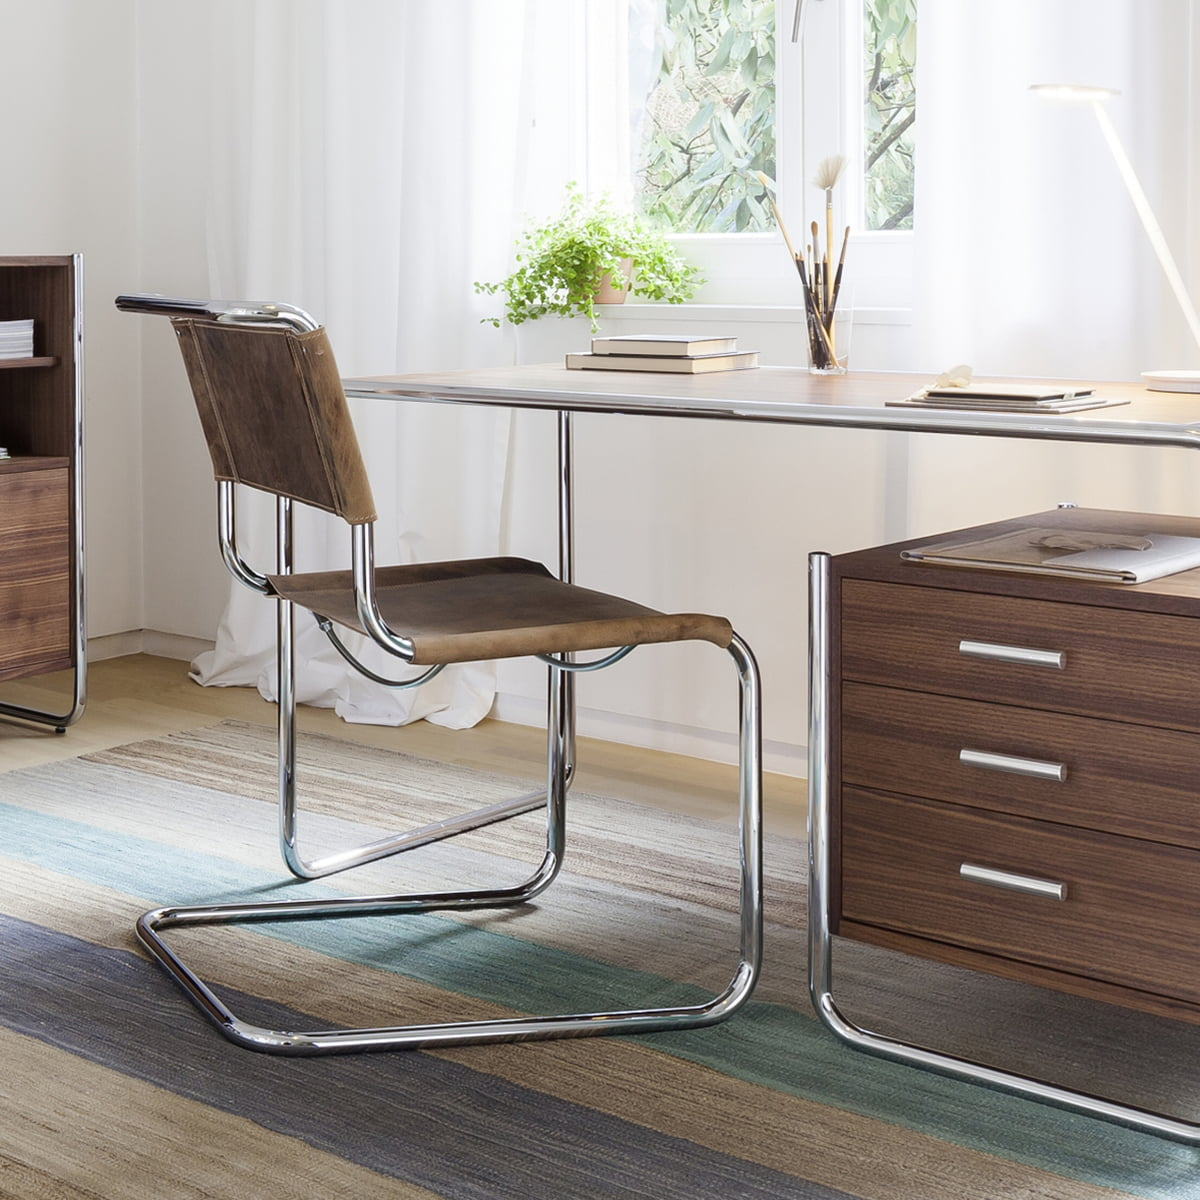 S 33 Cantilever Chair By Thonet